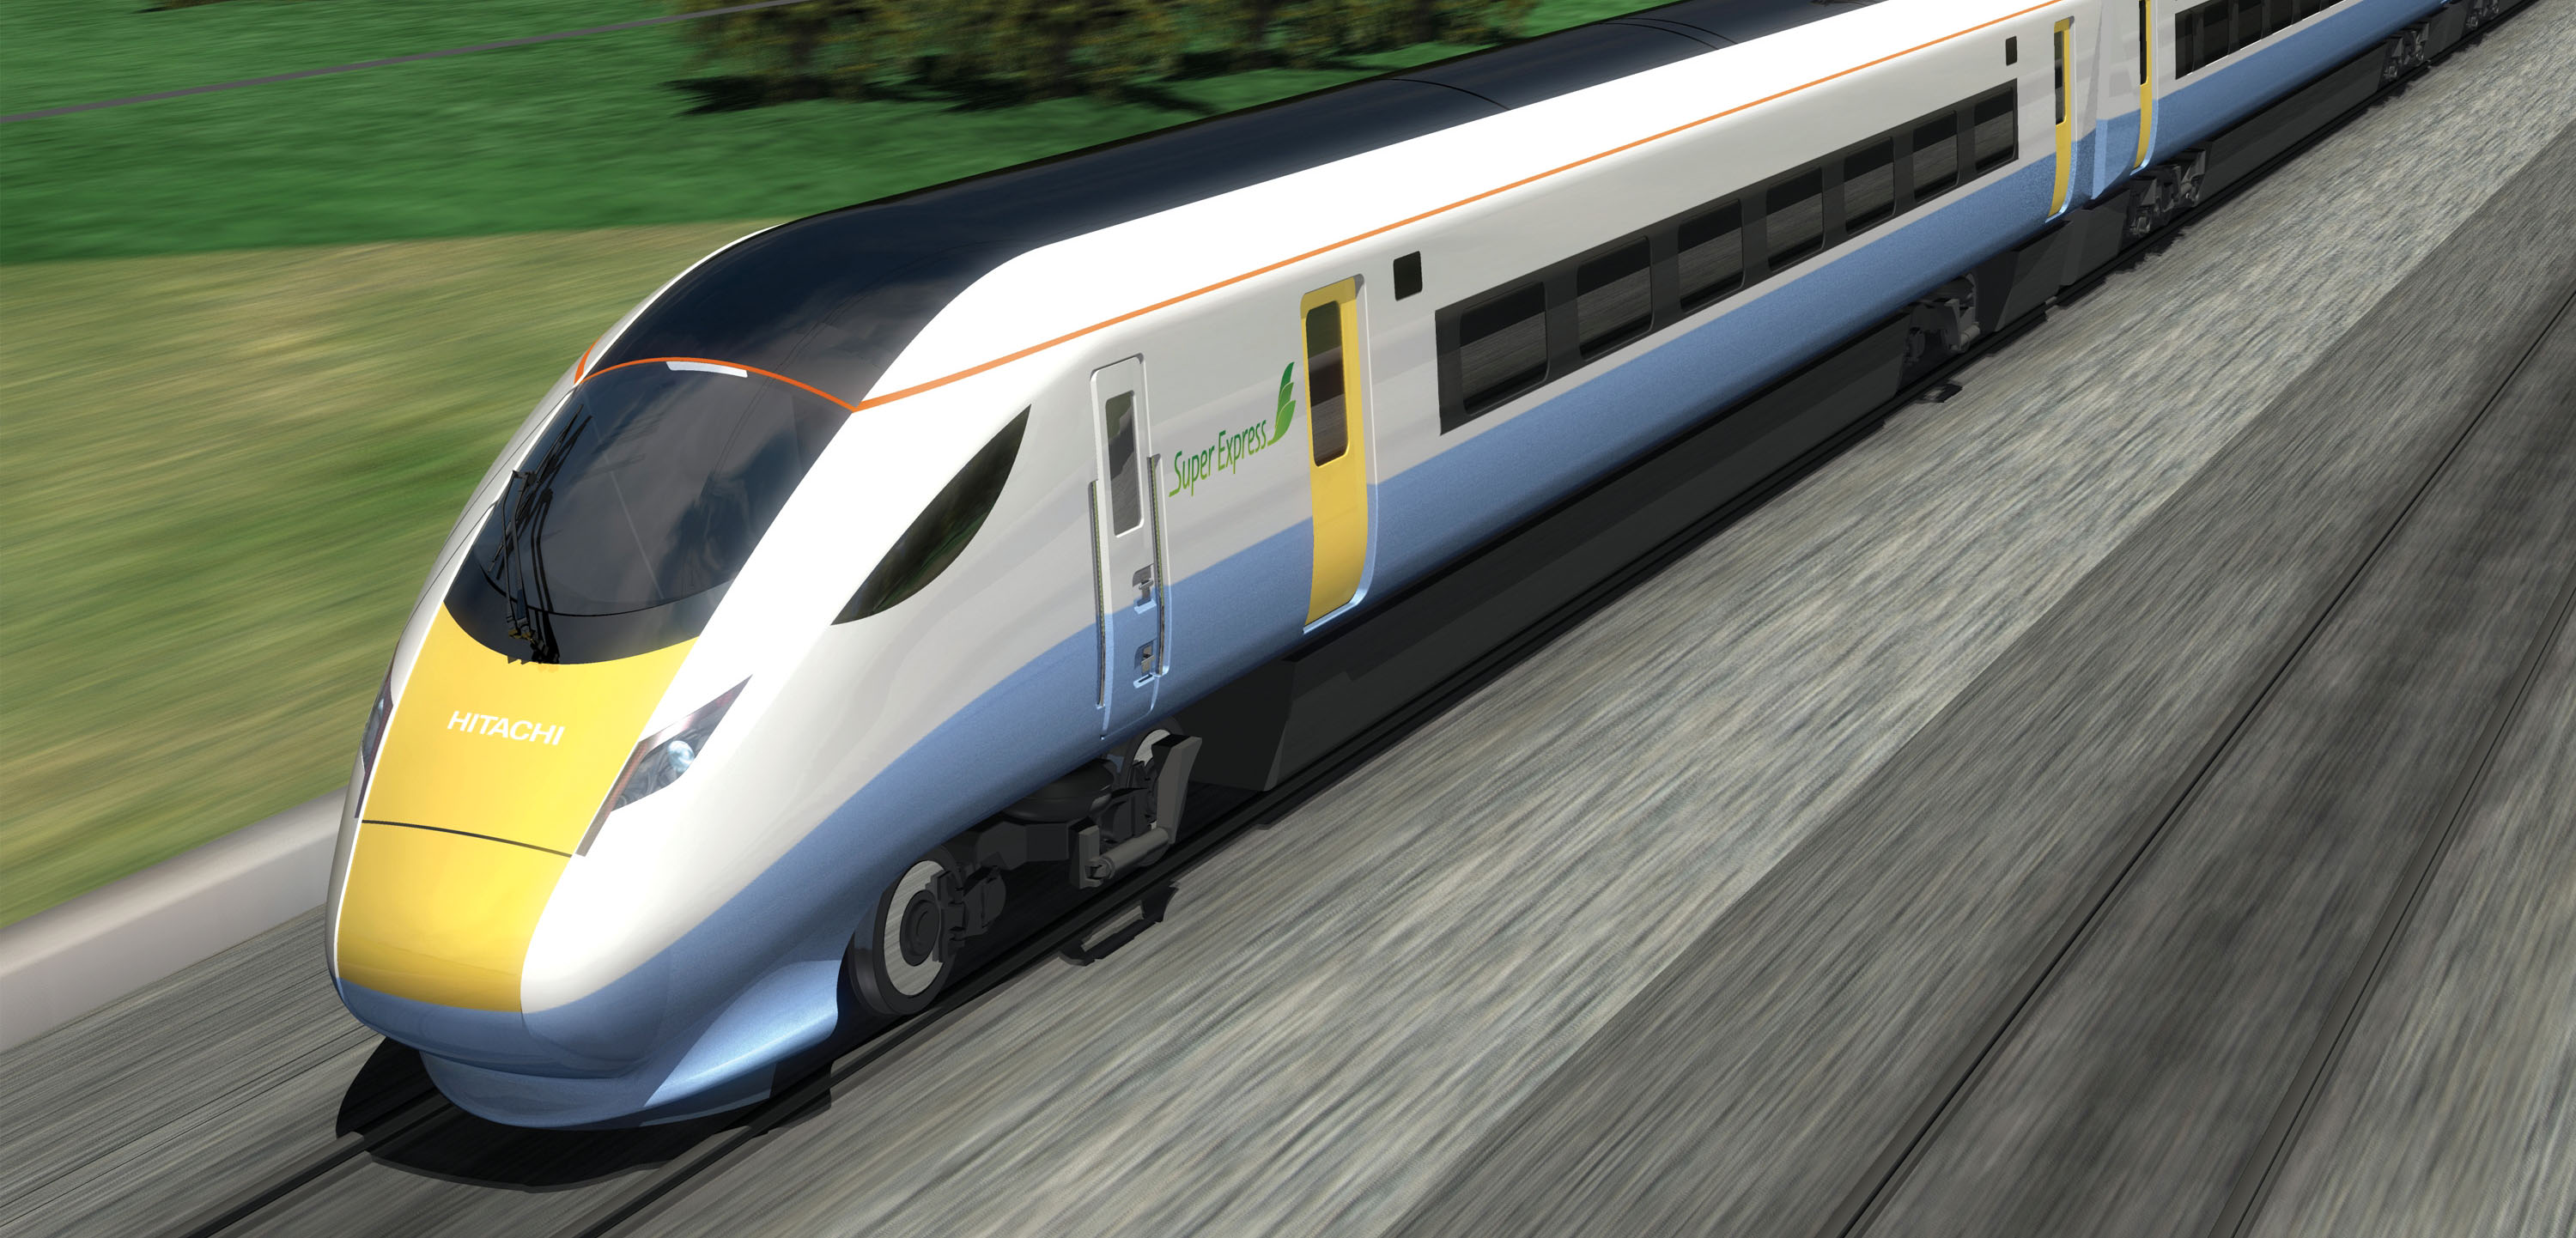 Hitachi Super Express Train - Joint Meeting with IET